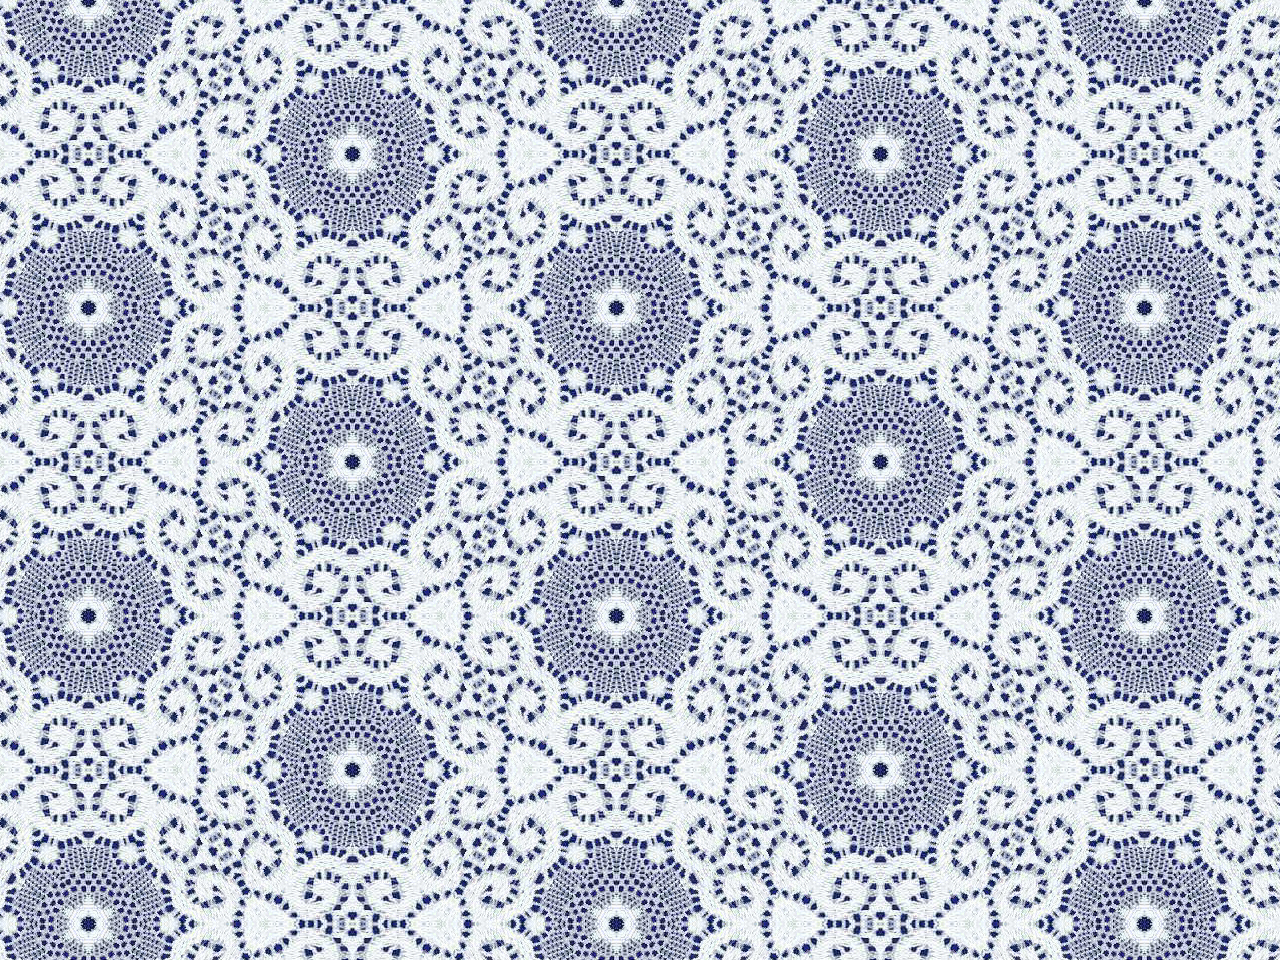 Lace fabric clipart vector free download Free Fabric Background Cliparts, Download Free Clip Art ... vector free download